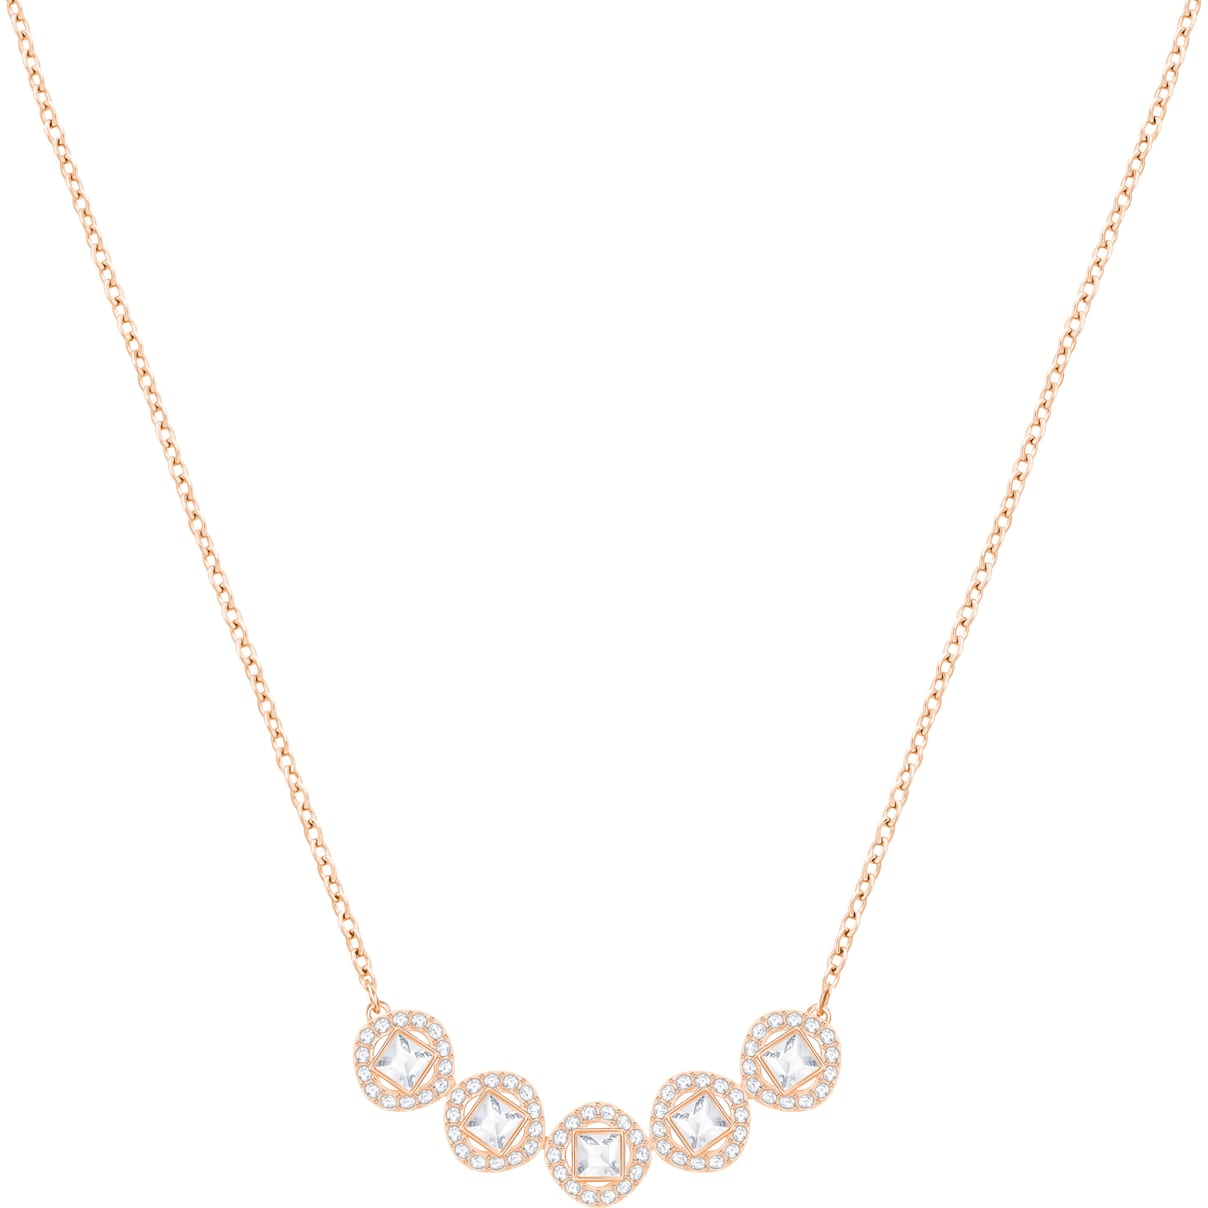 Swarovski Angelic Square Necklace, White, Rose-gold tone plated